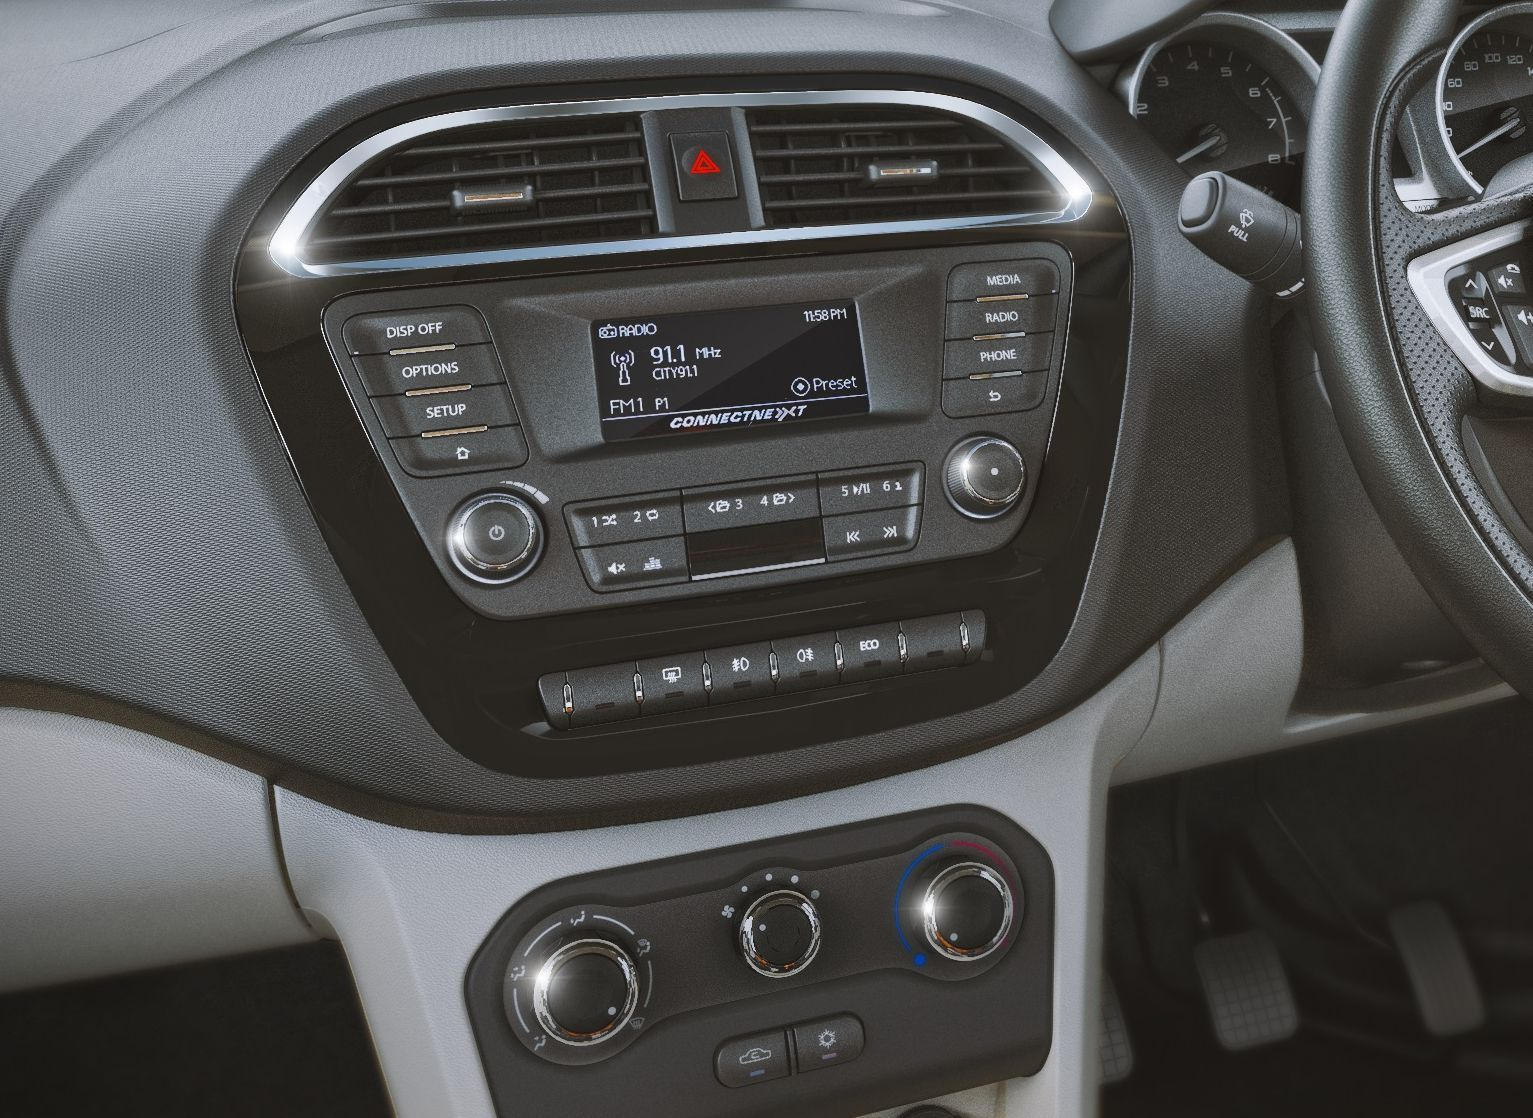 Tata Zica Music System - the perfect partner for long drives. Image Courtesy: ondrive.in